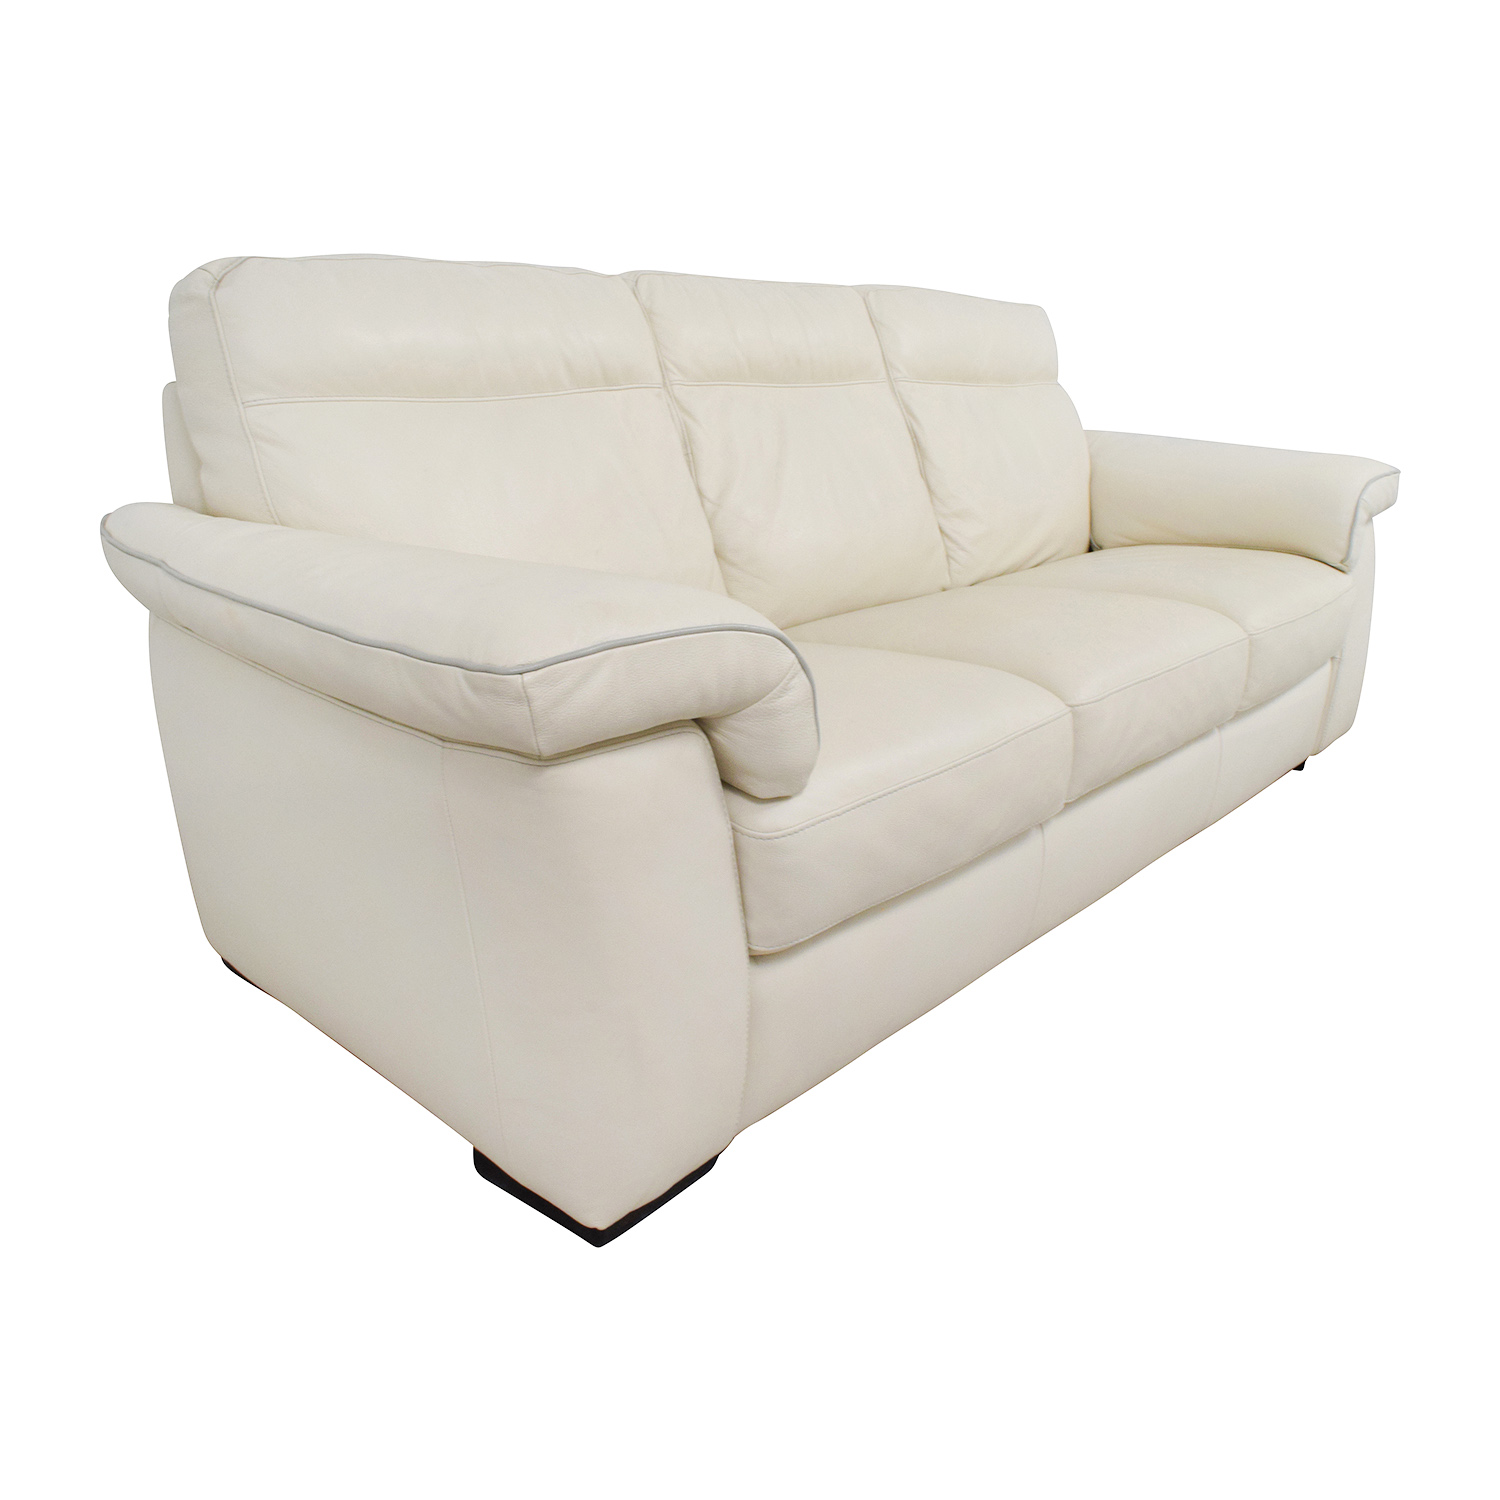 Buying A Second Hand Sofa 69 Off White Leather Three Cushion Sofa Sofas